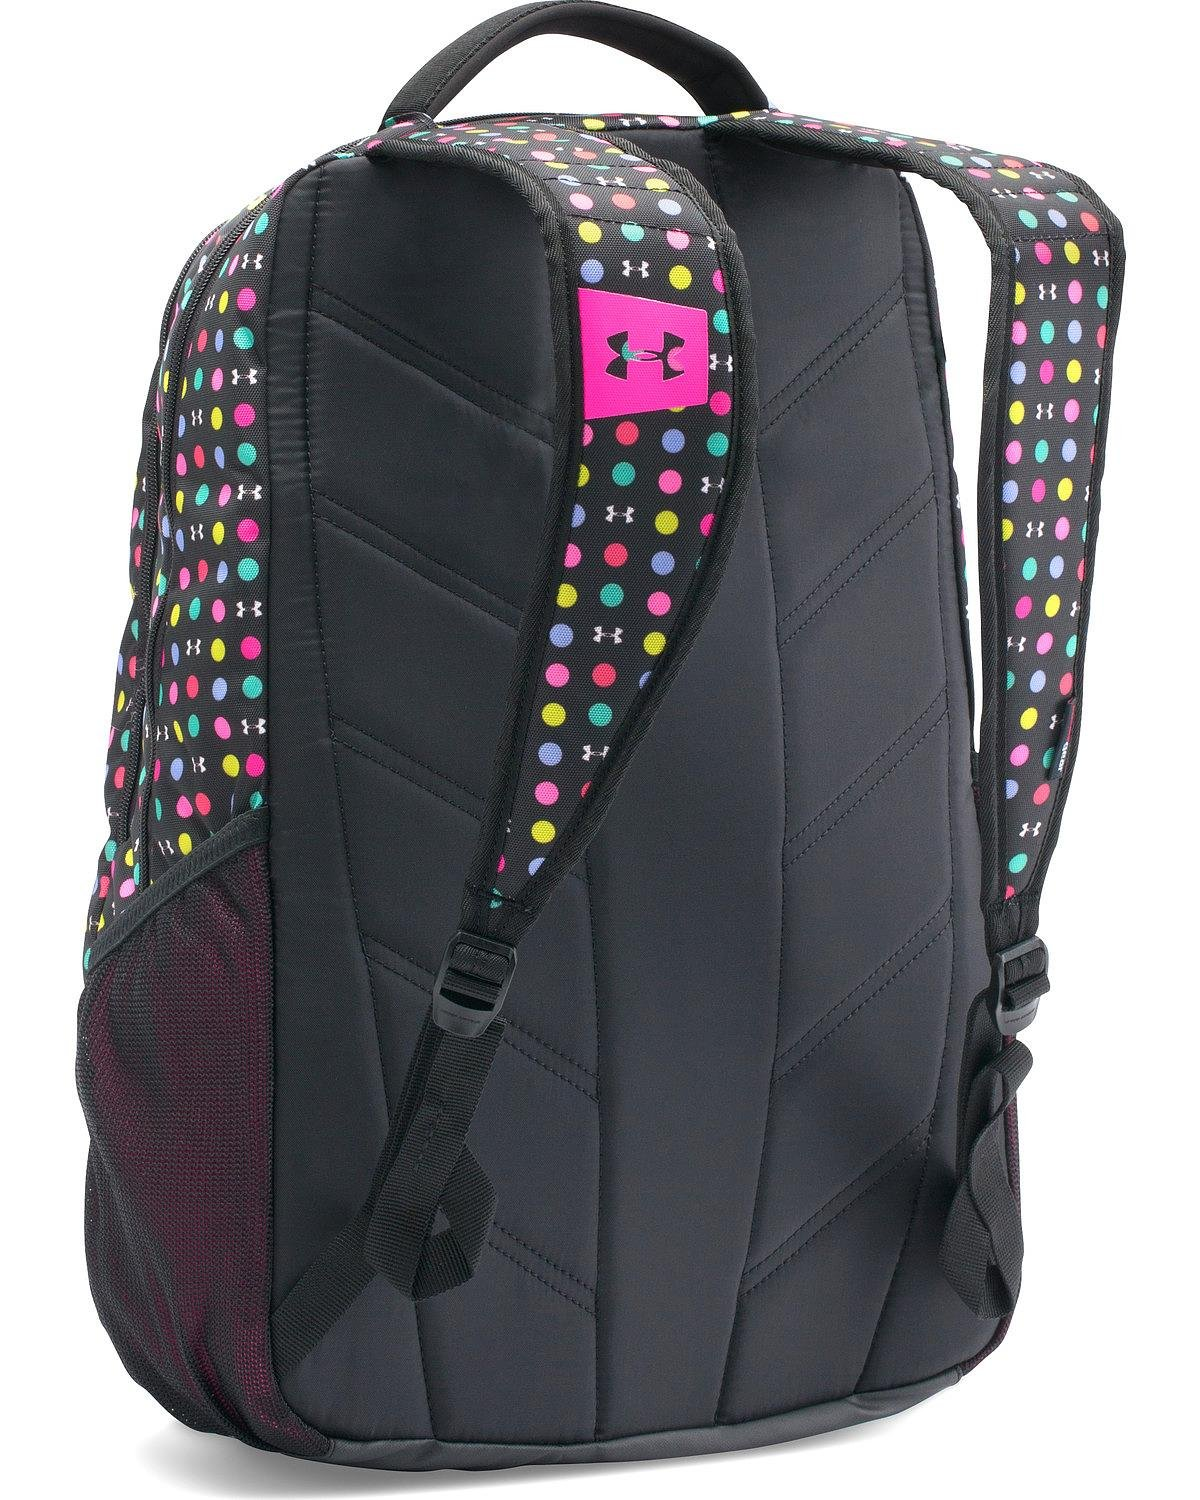 c100d707d6 Under armour girls storm hustle ii backpack black one size sports outdoors  jpg 1200x1500 Under armour